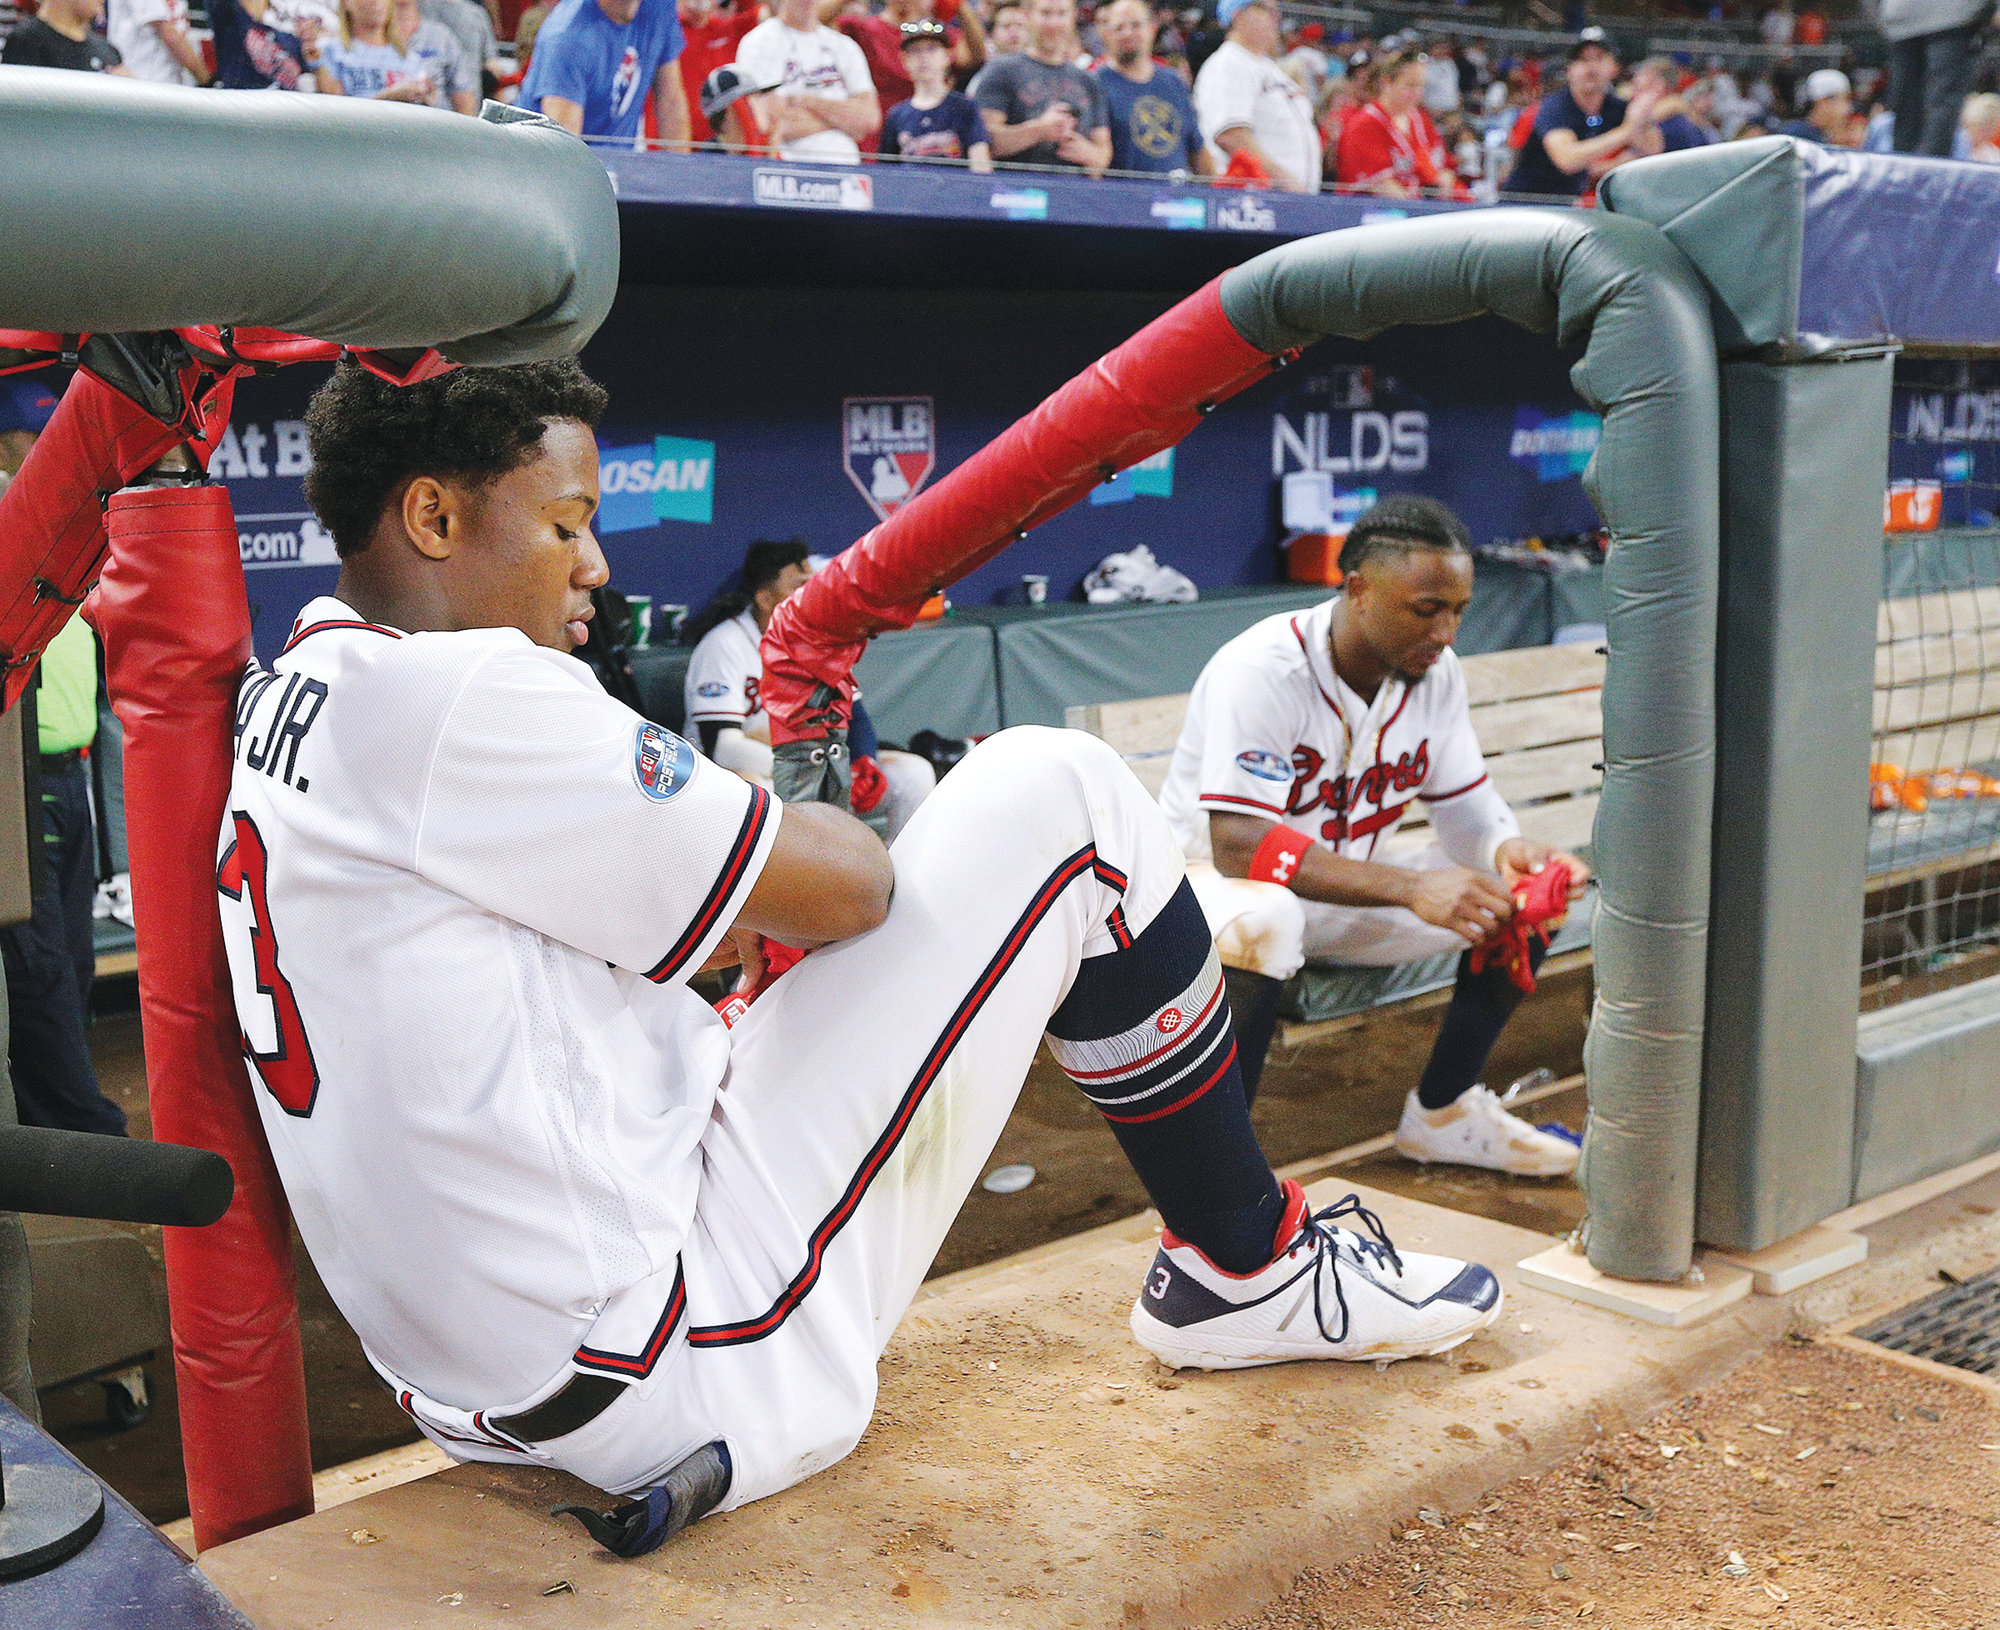 Atlanta's Ronald Acuna Jr., left, and Ozzie Albies sit in the dugout while the Los Angeles Dodgers celebrate their series-clinching Game 4 victory in their National League Division Series on Monday in Atlanta.